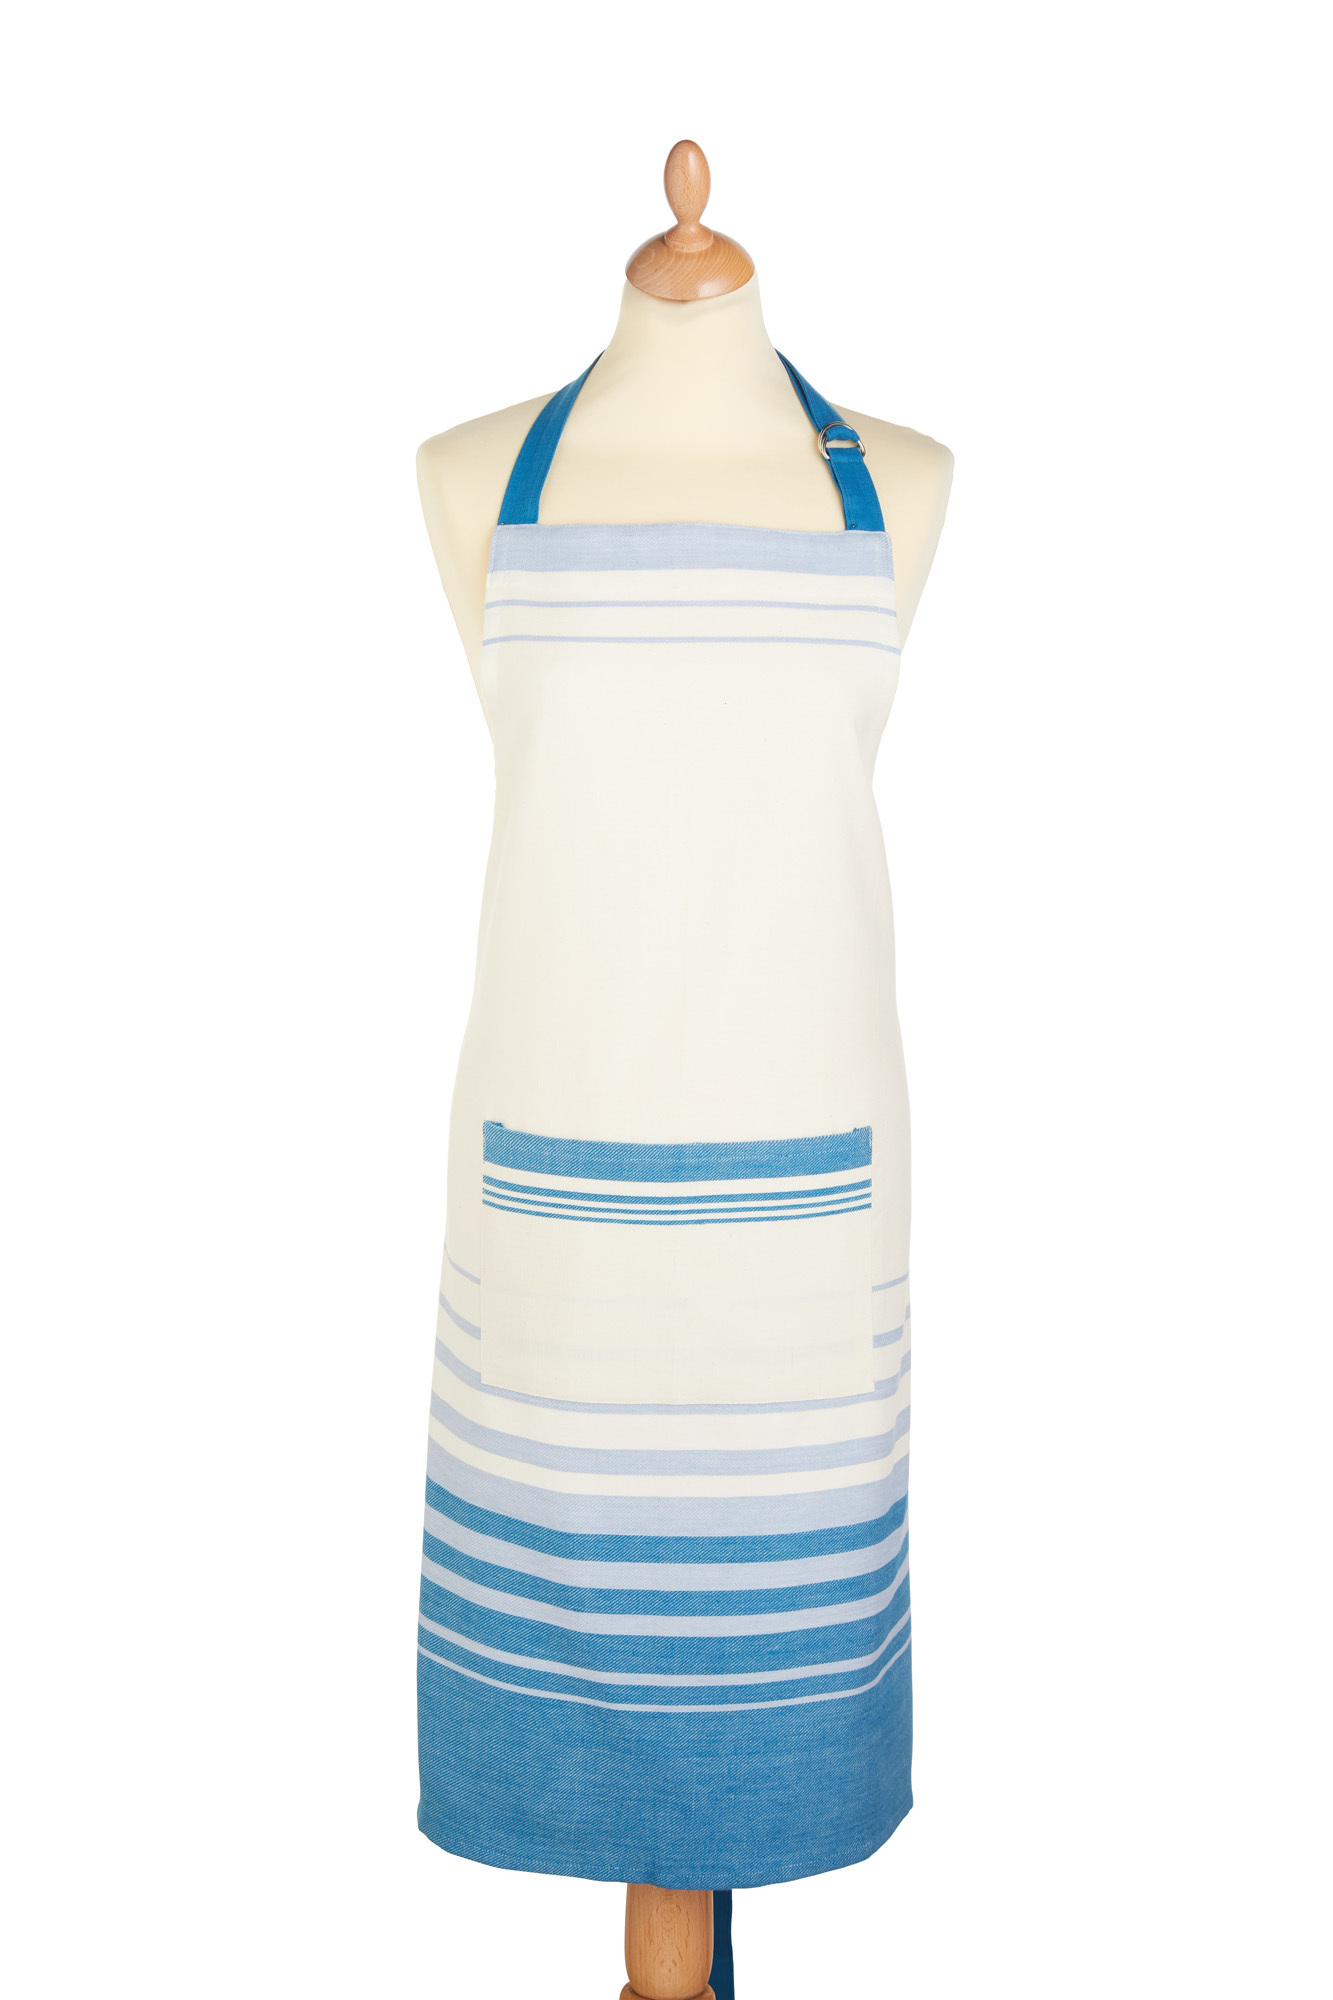 Brand new range of matching aprons, tea towels & oven gloves